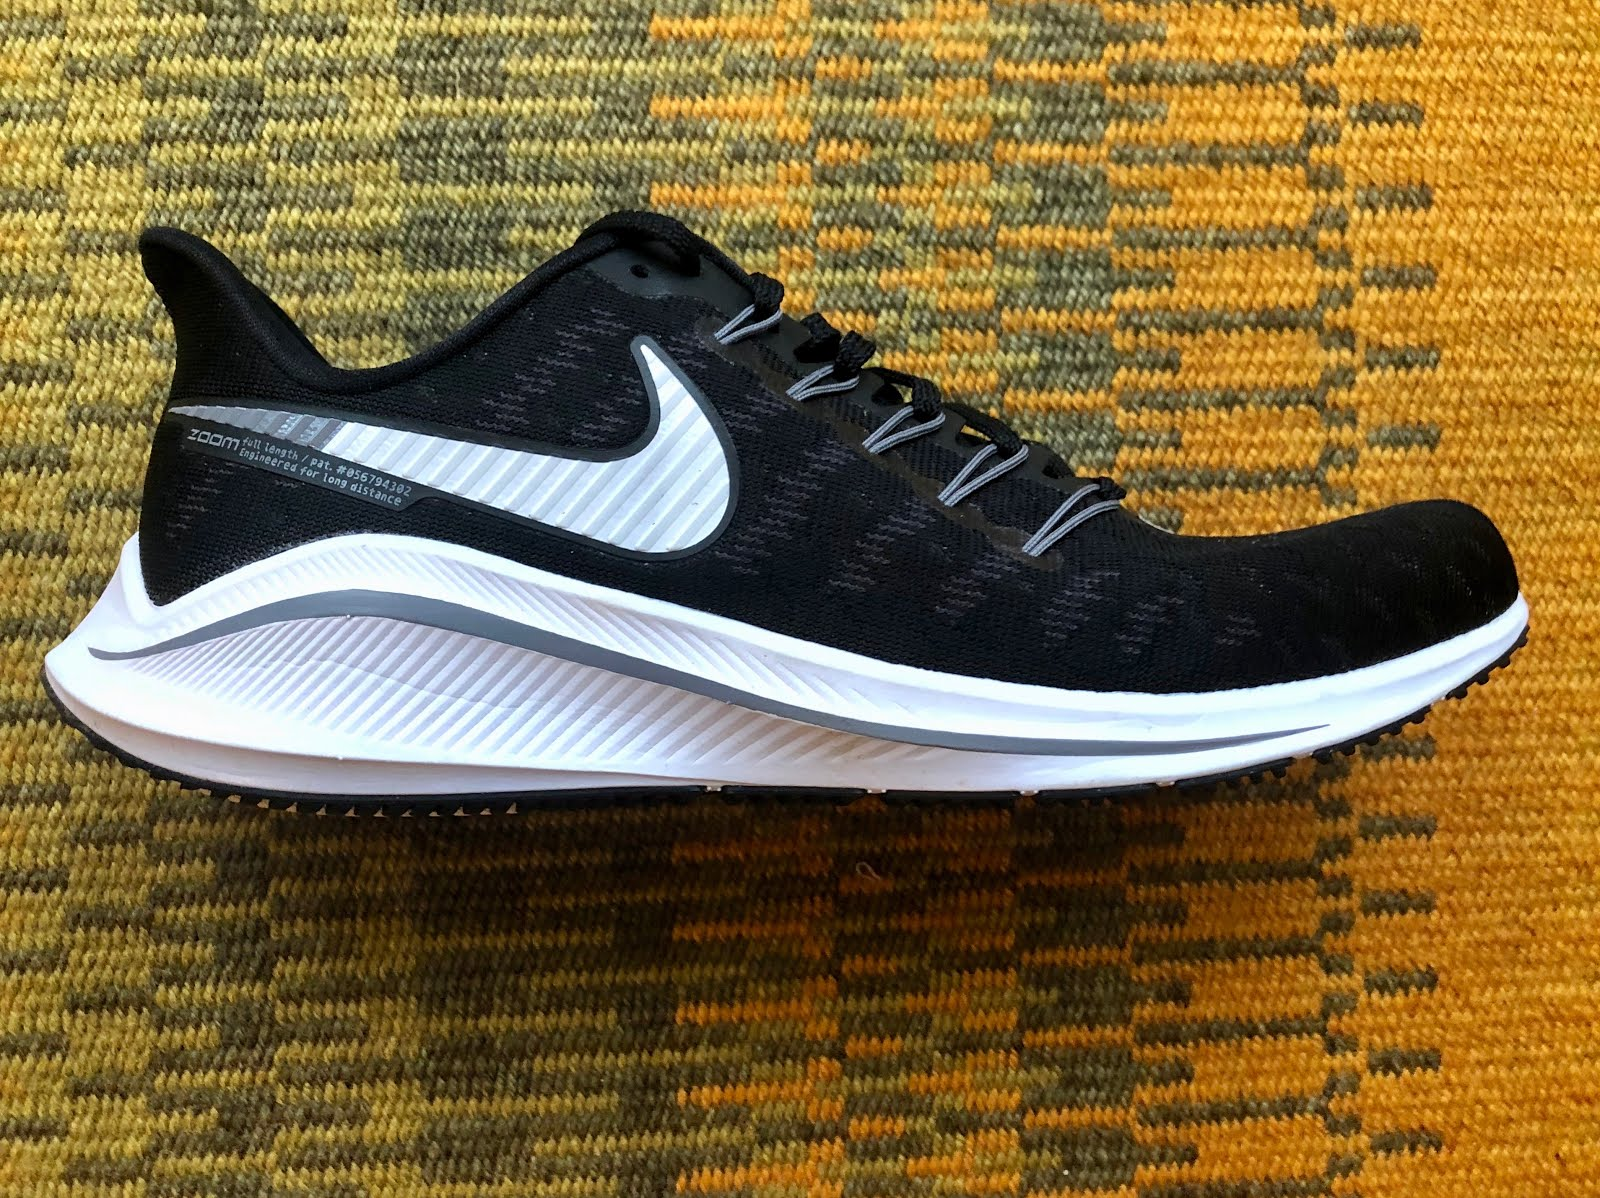 21ad5768b319 Nike Zoom Vomero 14 Review  Fast and Responsive Heavy Duty Run Trainer!